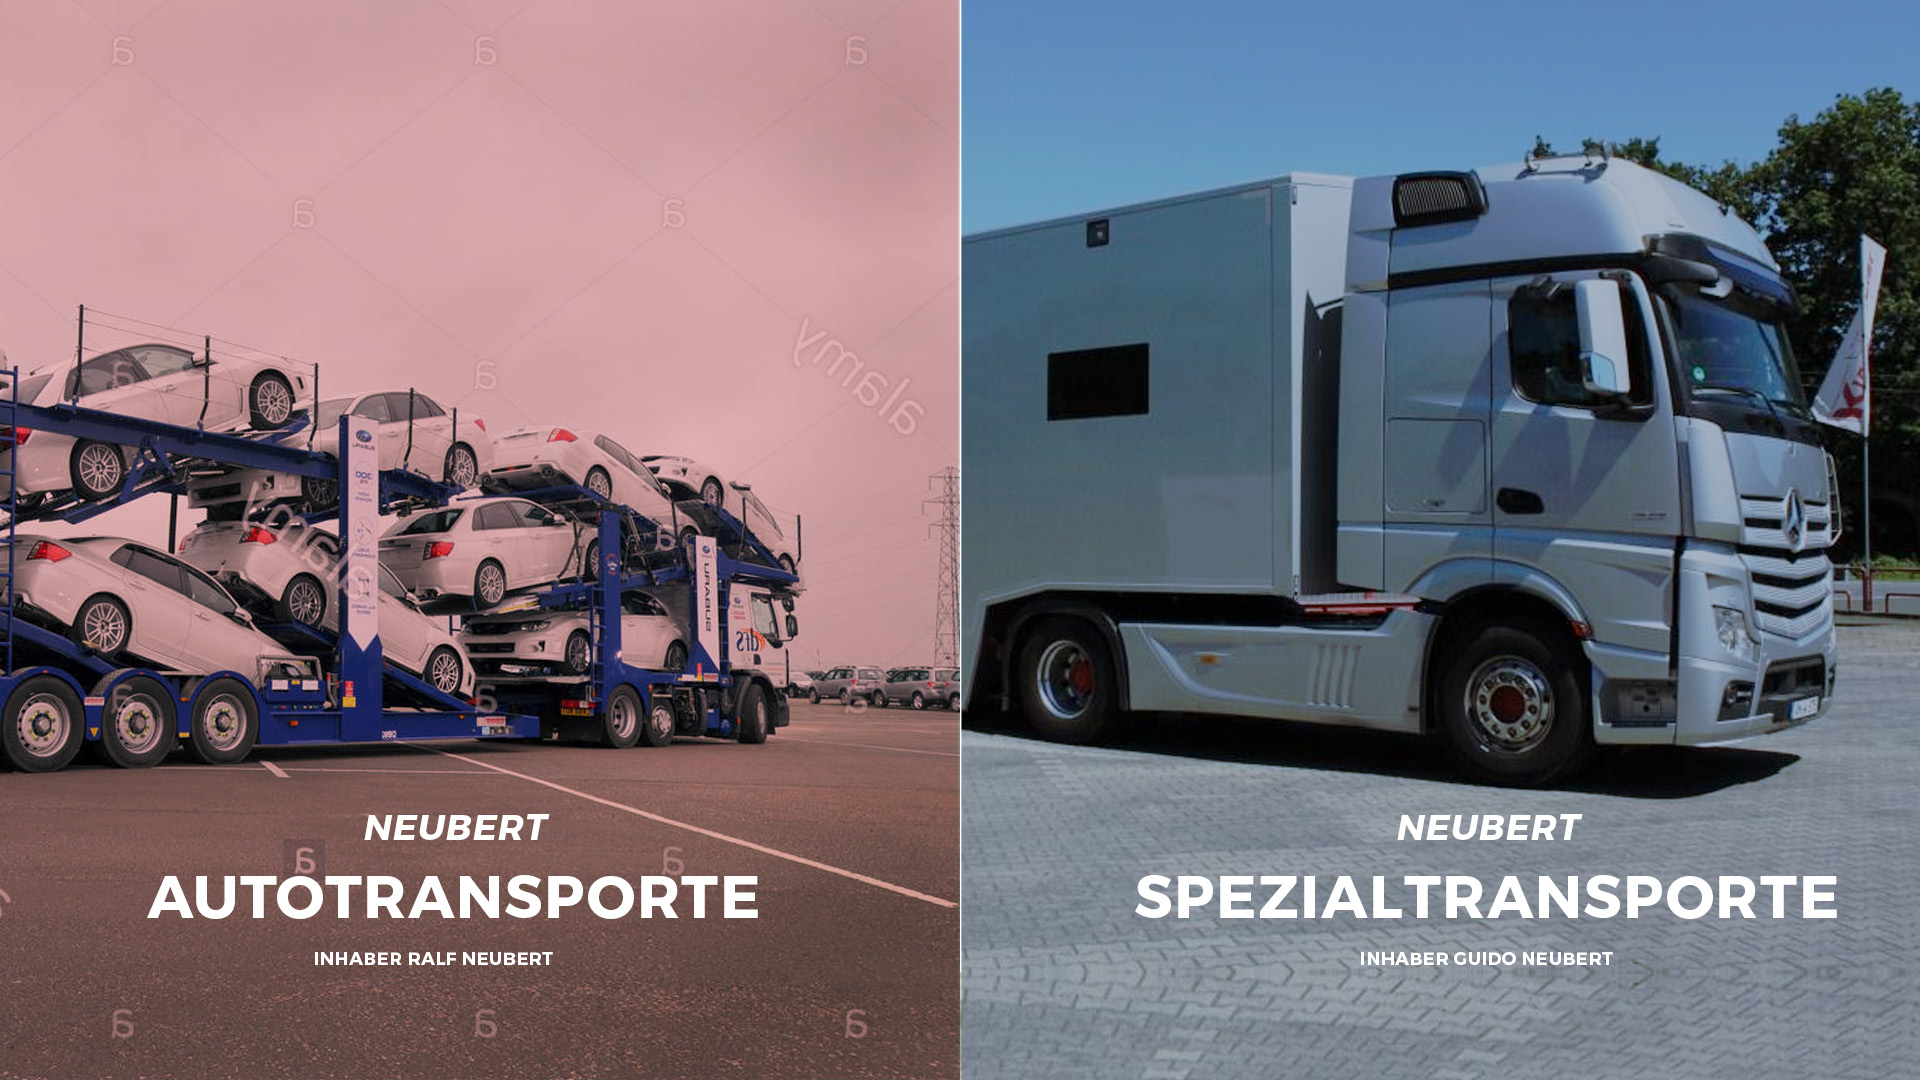 Neubert Autotransporte